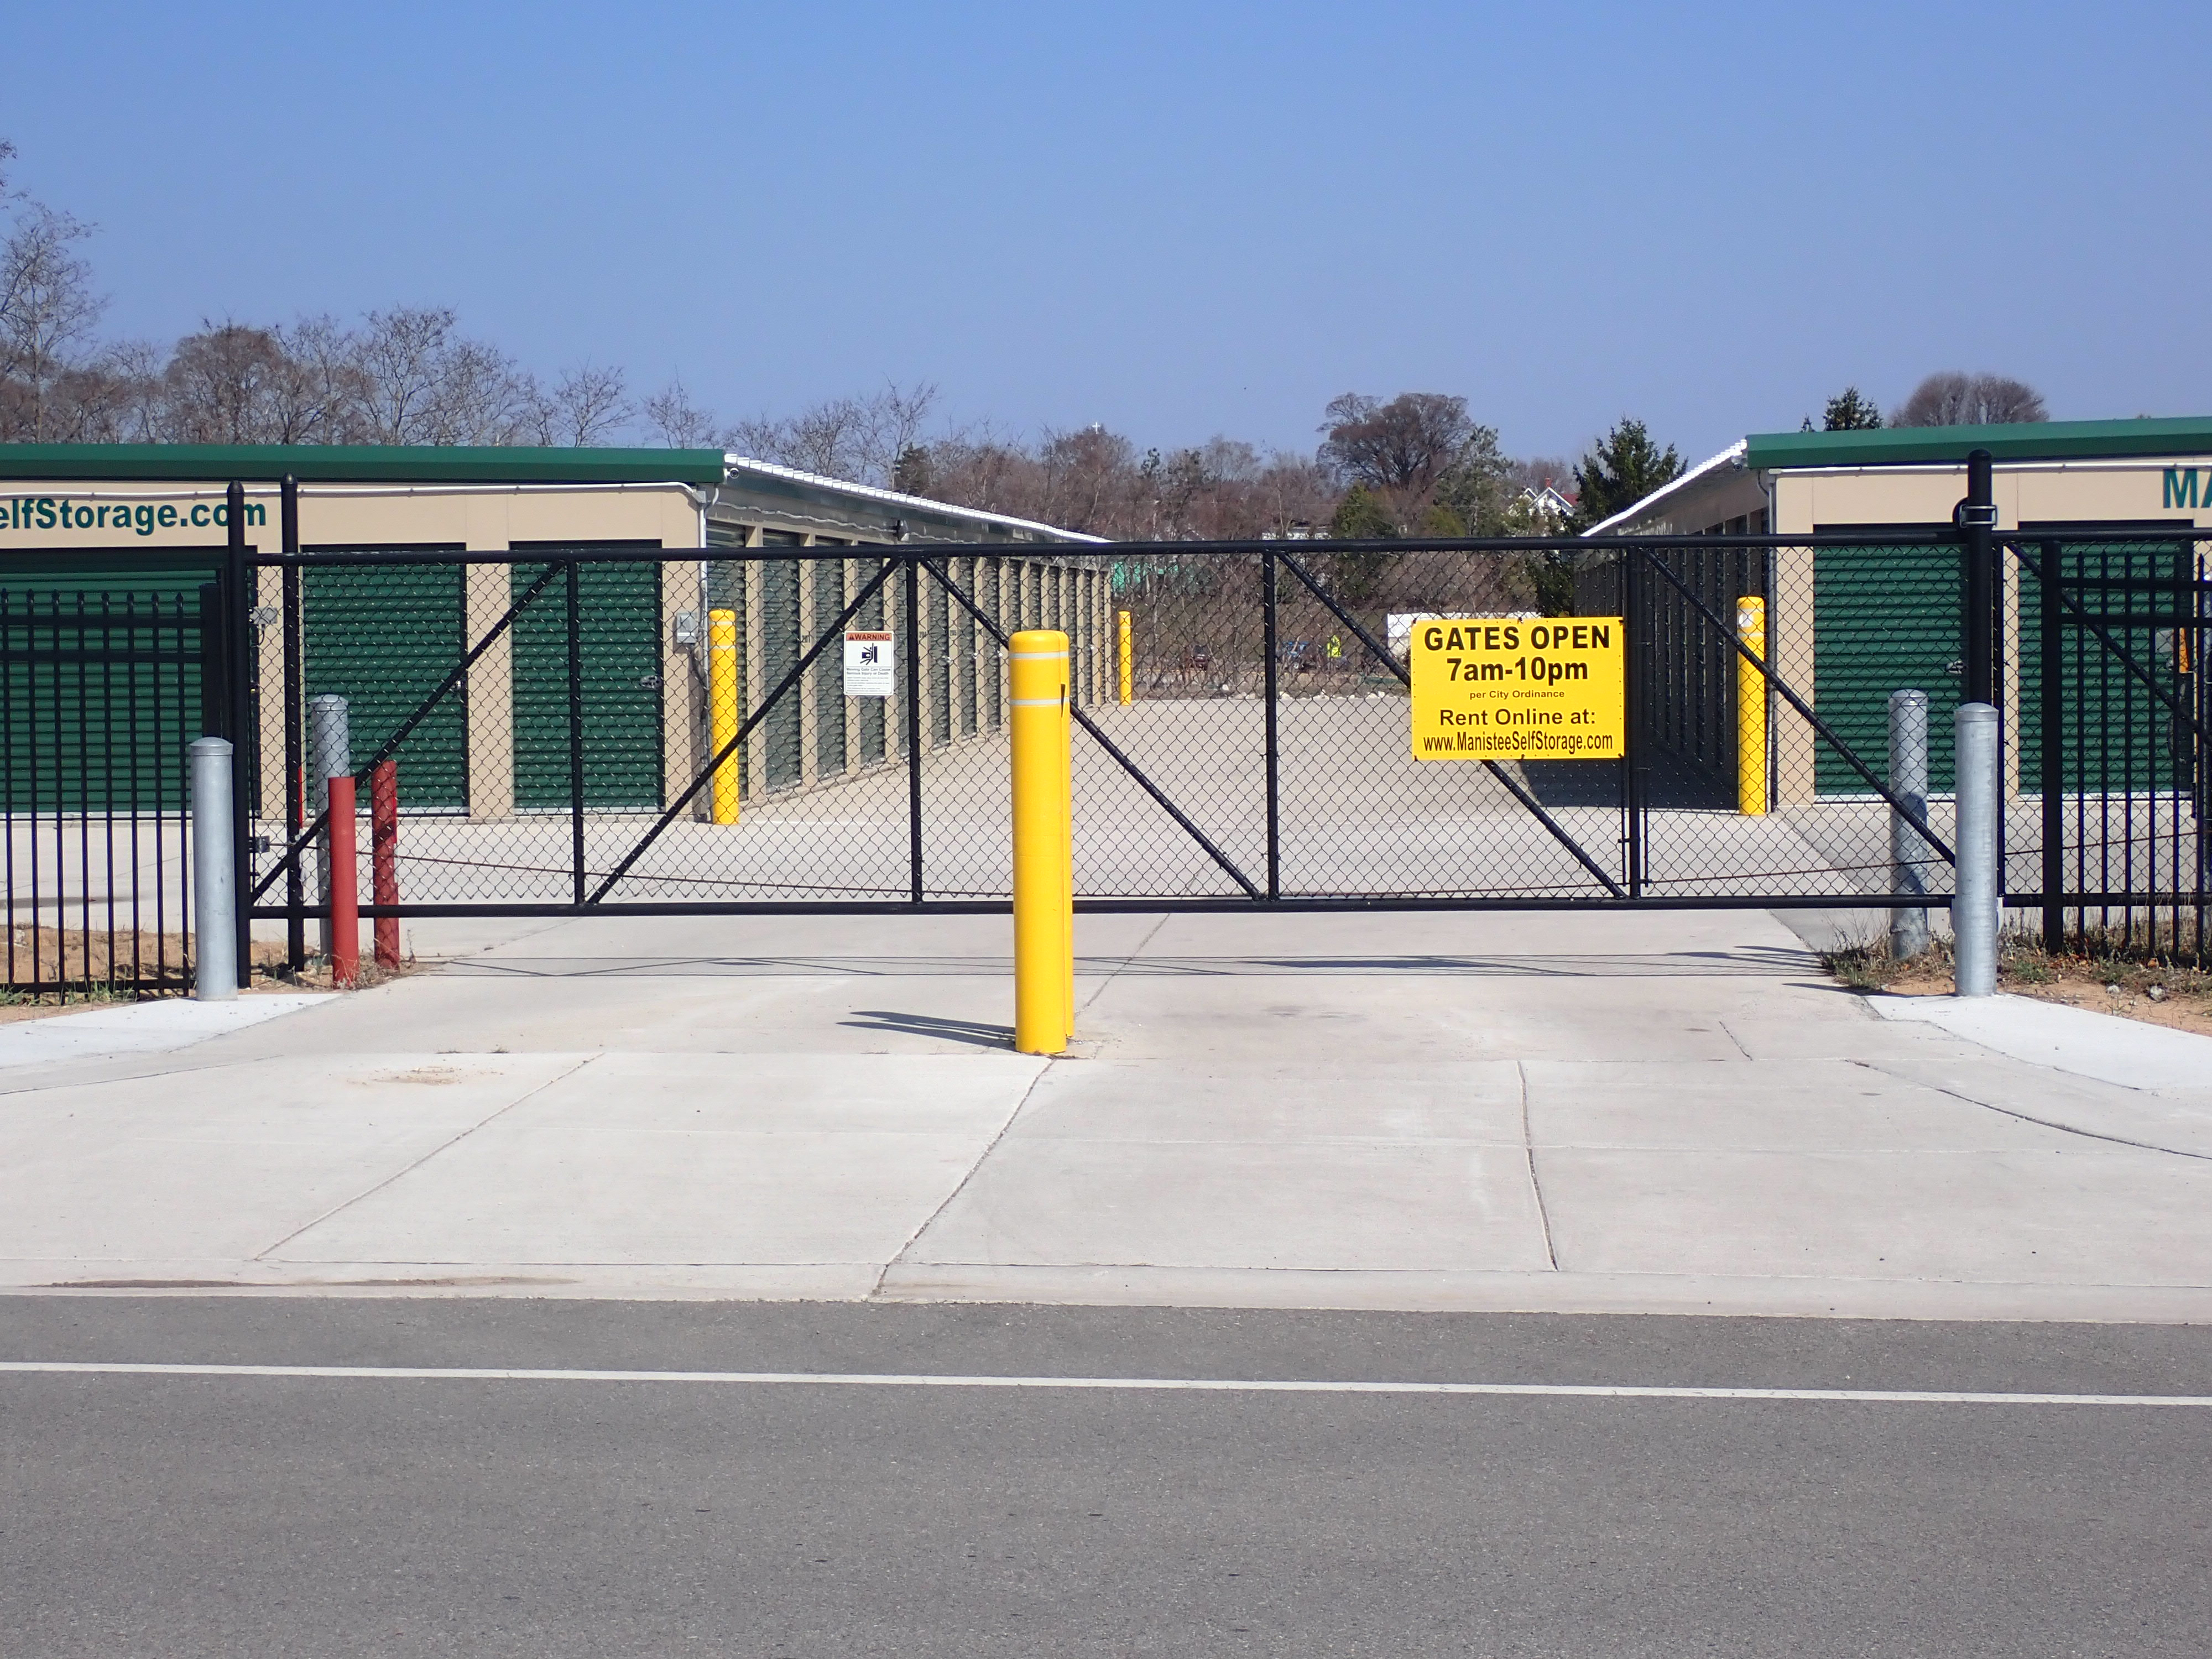 Fenced and gated storage facility in Manistee, MI